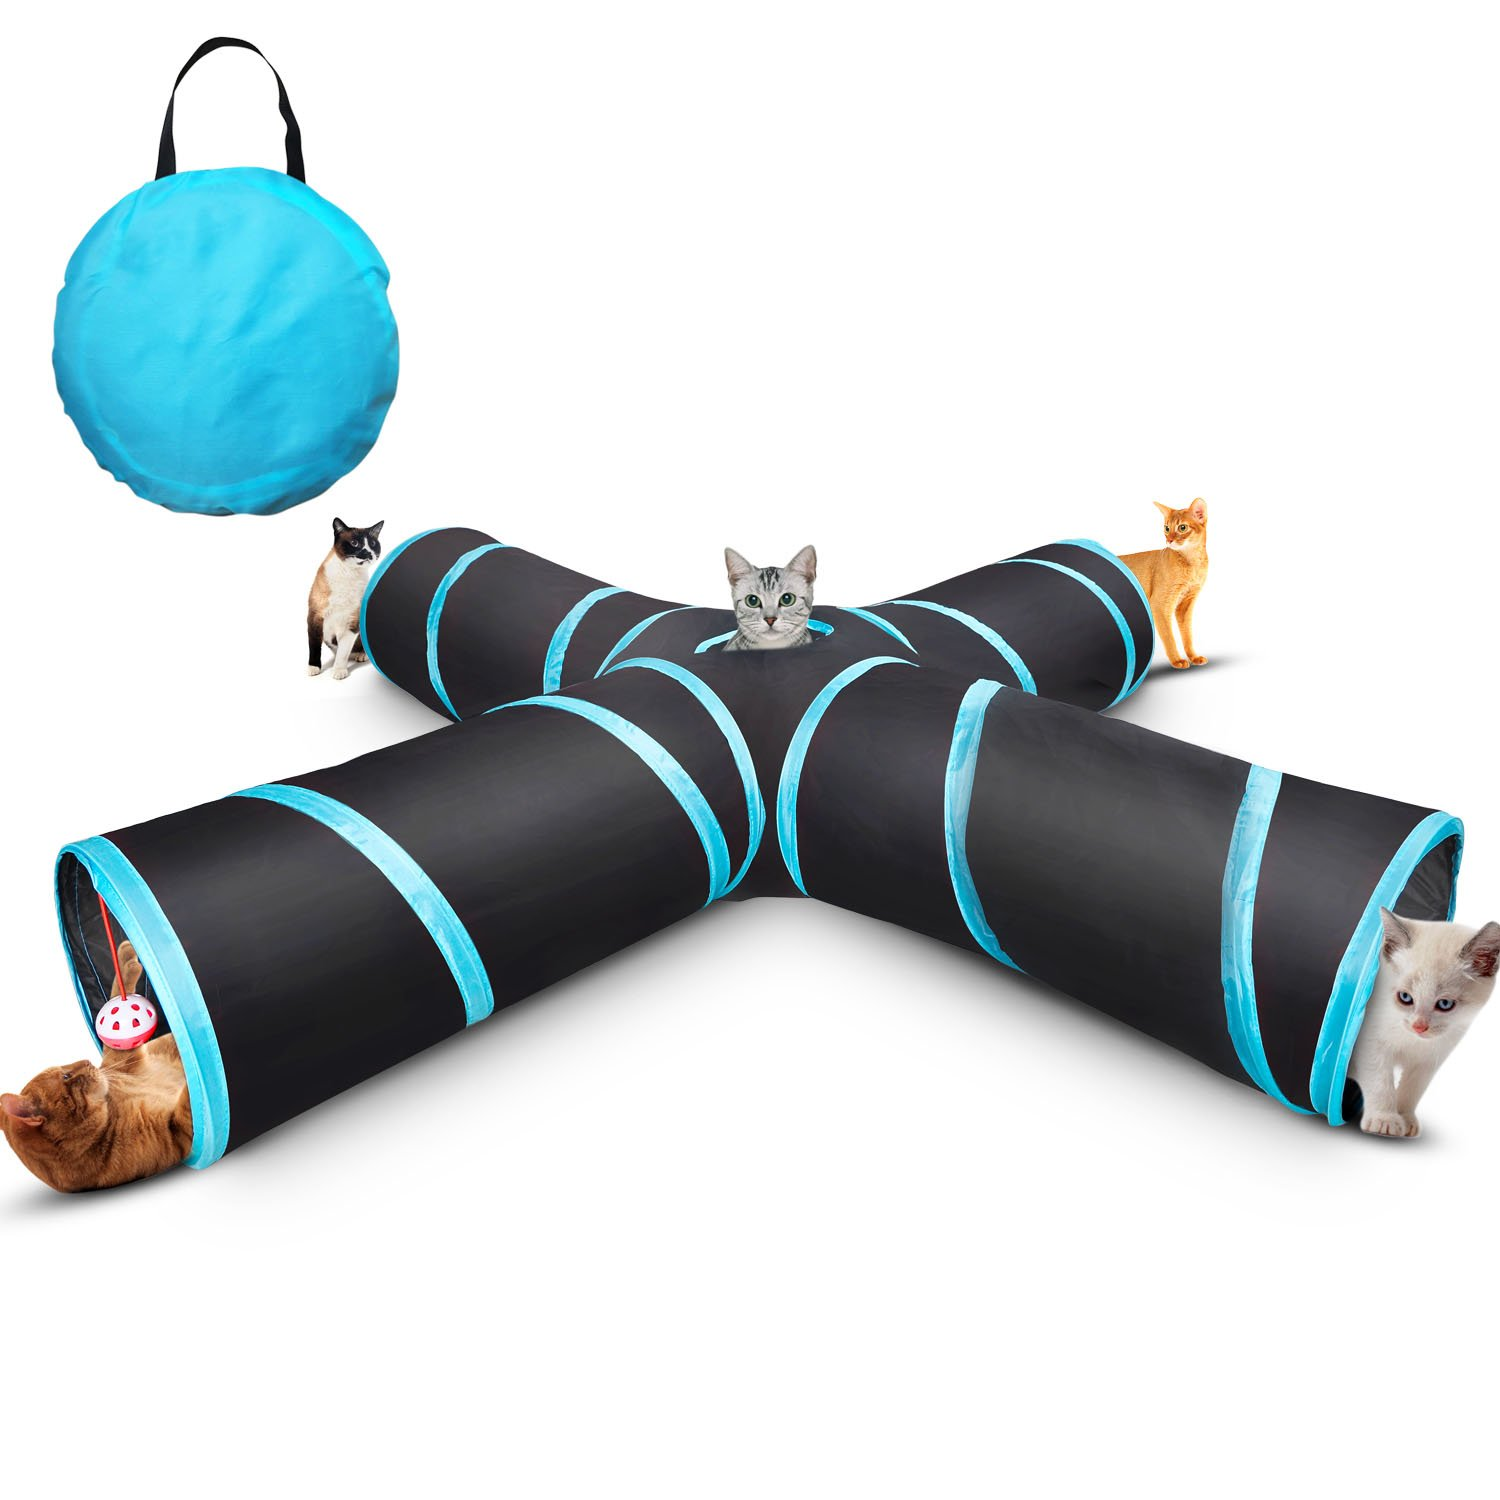 Creaker 4 Way Cat Tunnel Collapsible Pet Play Tunnel Tube Toy with a Bell Toy & a Soft Ball Toy for Cat, Puppy, Kitty, Kitten, Rabbit by Creaker